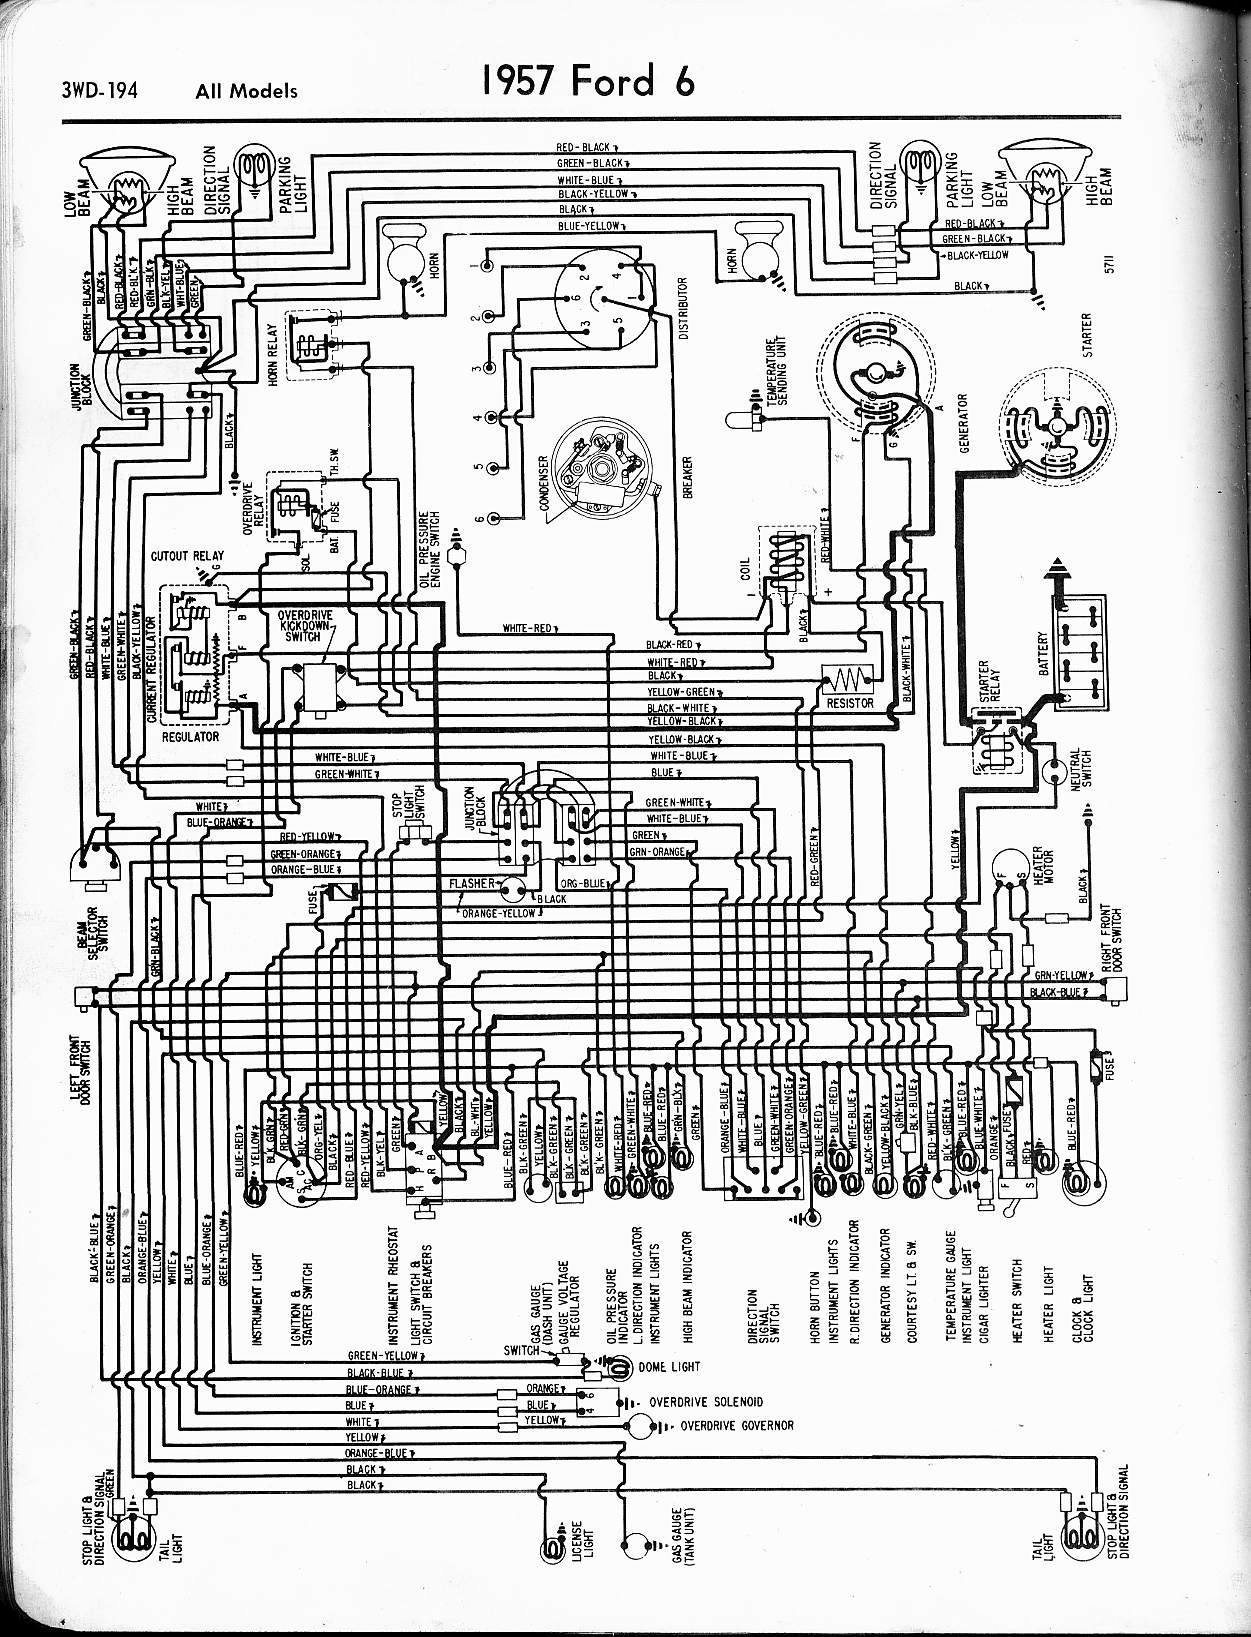 ford diagrams Duraspark 2 Wiring Diagram 57 ford wiring drawing a